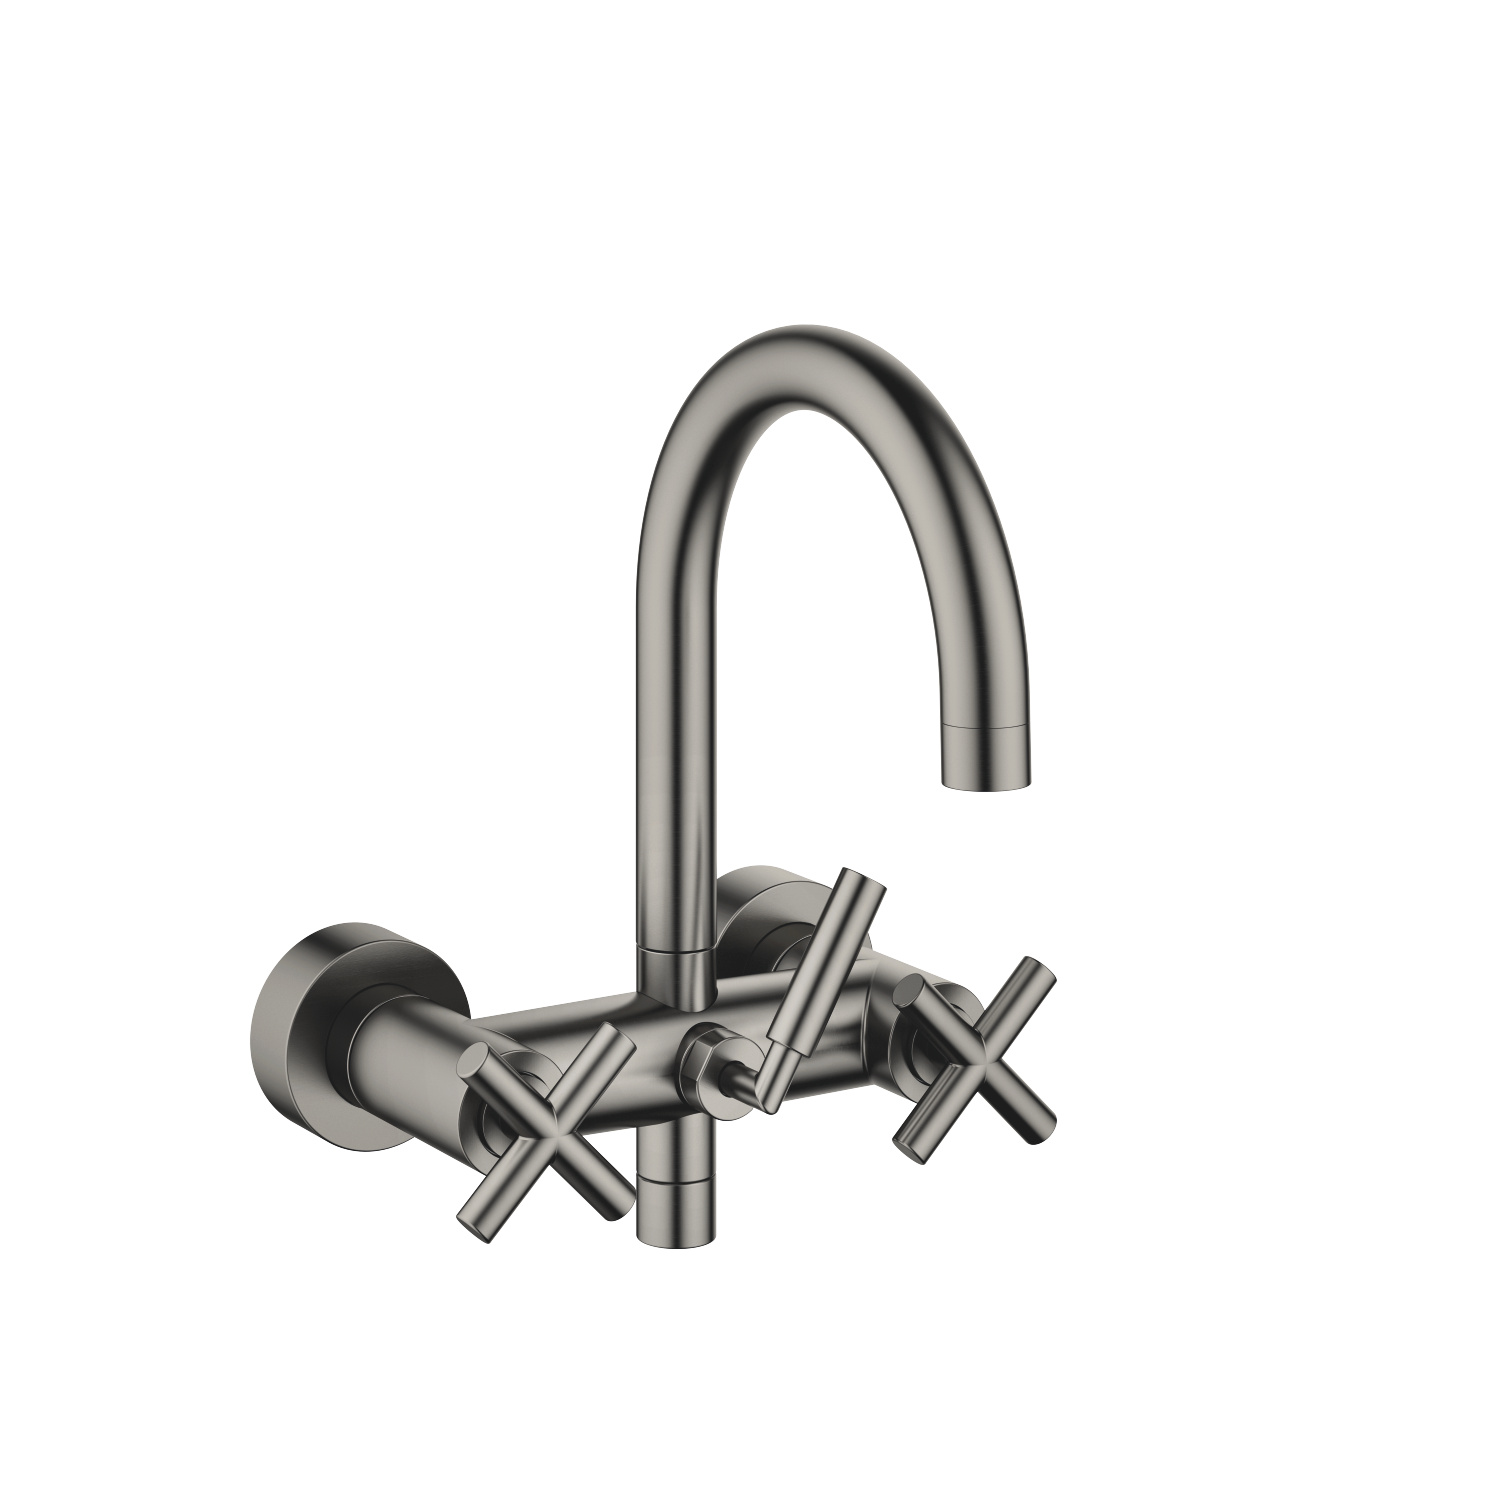 Bath mixer for wall mounting - Dark Platinum matt